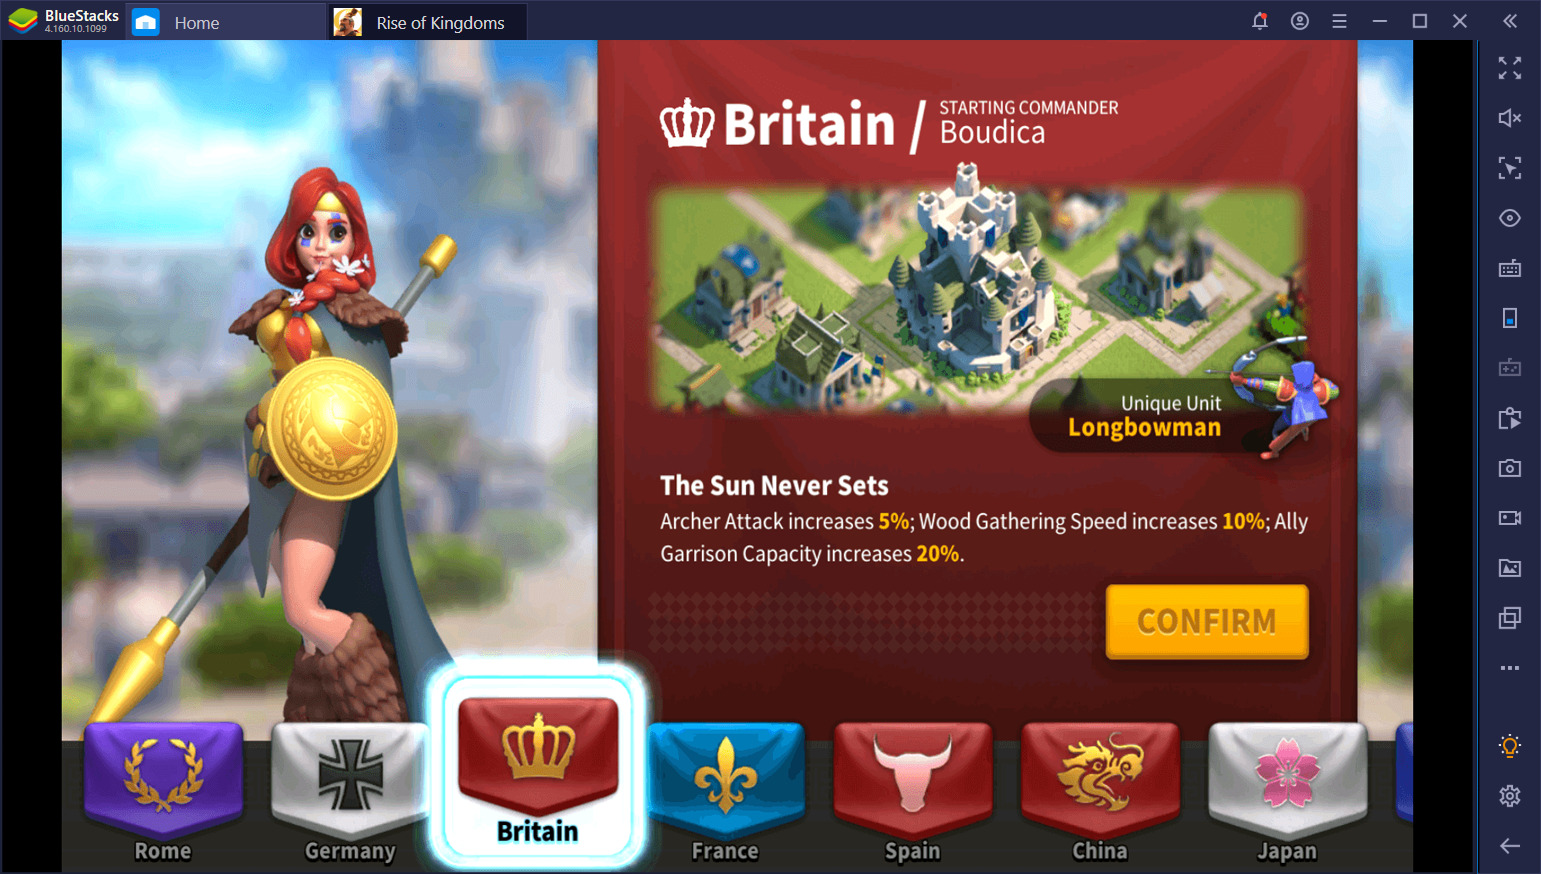 The Ultimate Guide to Choosing the Best Civilization in Rise of Kingdoms